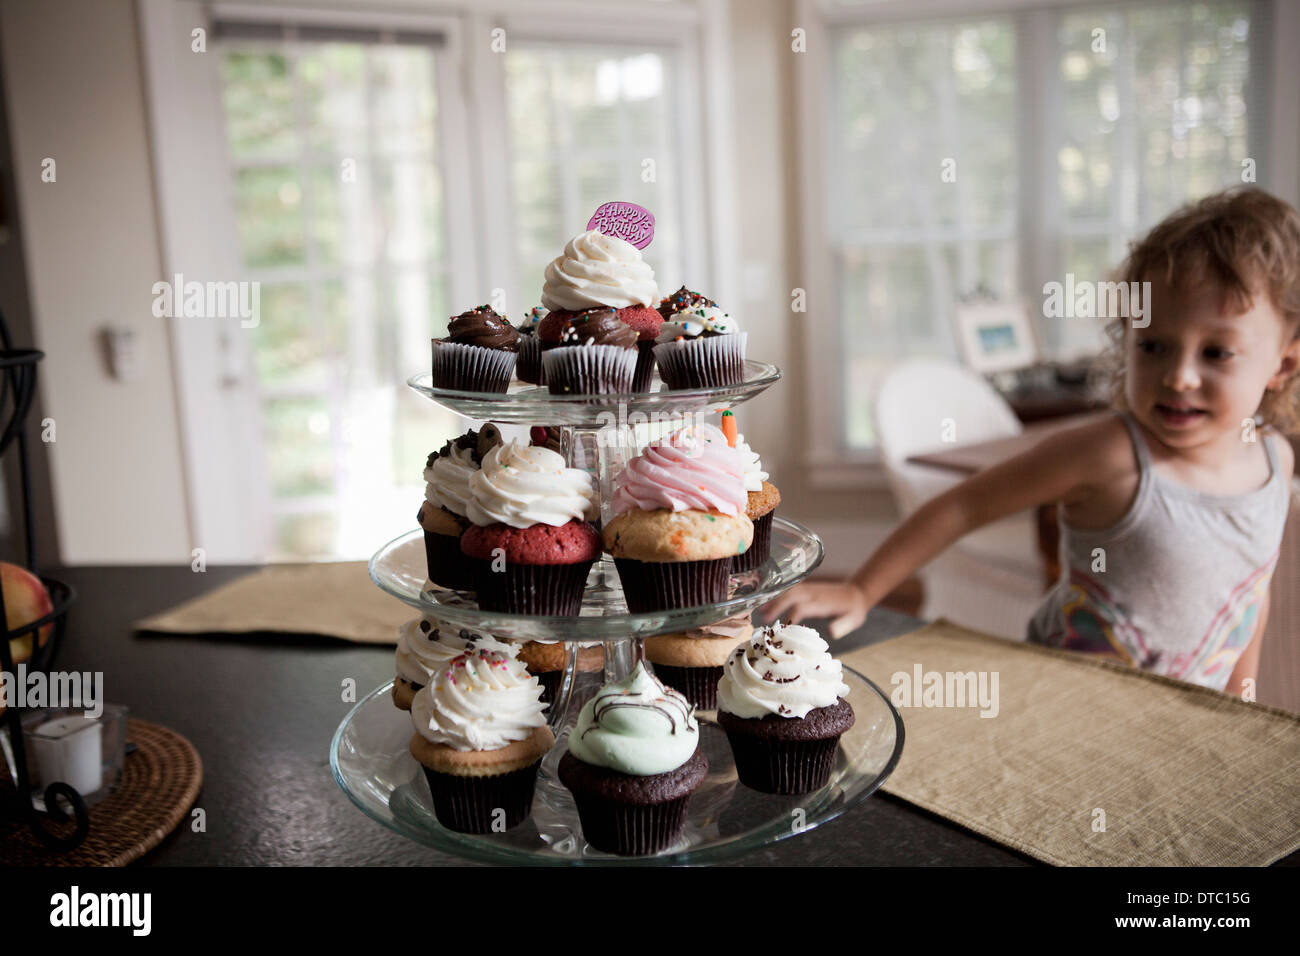 Female toddler looking at cake stand full of cupcakes - Stock Image